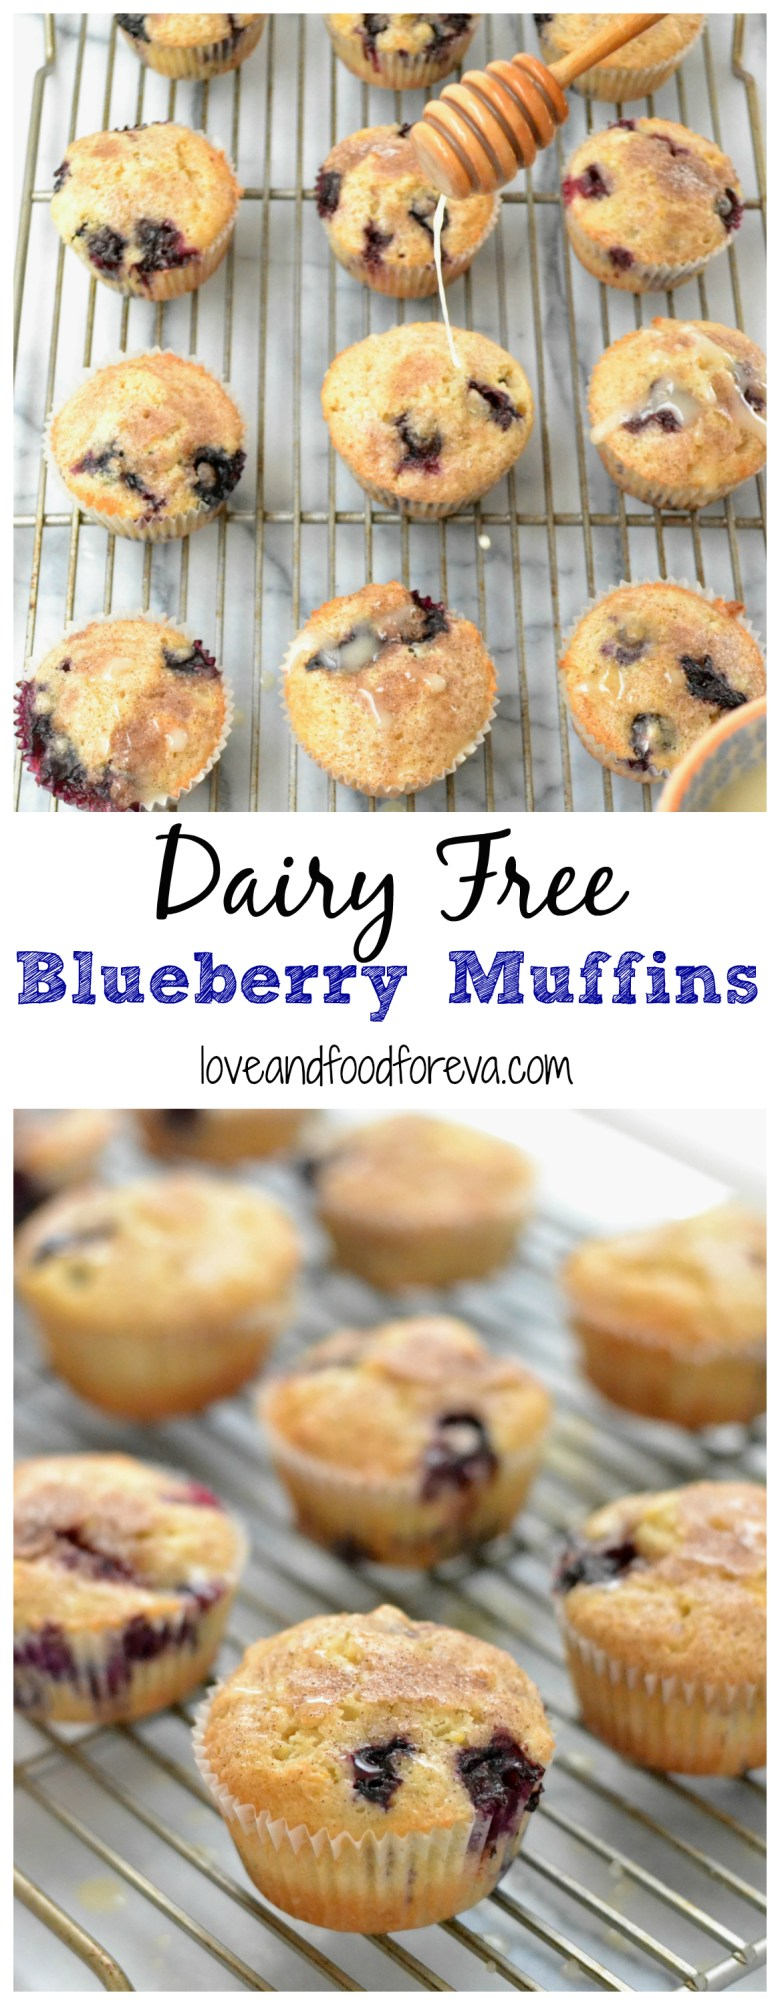 Dairy Free Blueberry Muffins with Lemon Glaze - perfect for a light brunch!